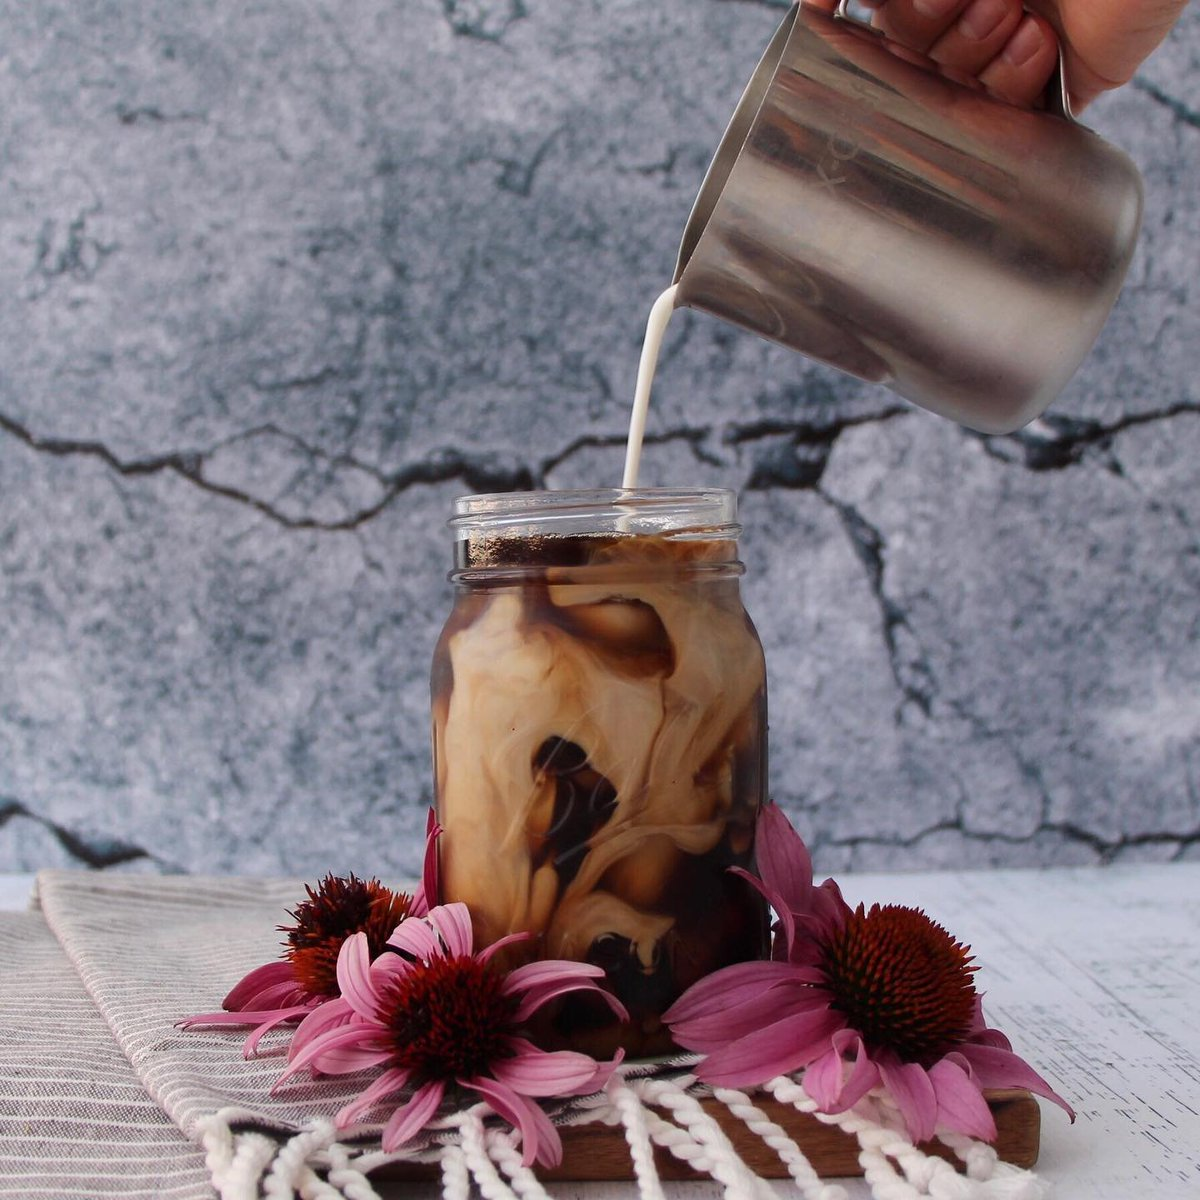 Need a little bit of coffee inspiration for the morning commute tomorrow? Check out Foundry 42's delicious and refreshing iced coffee... go on, you deserve it!